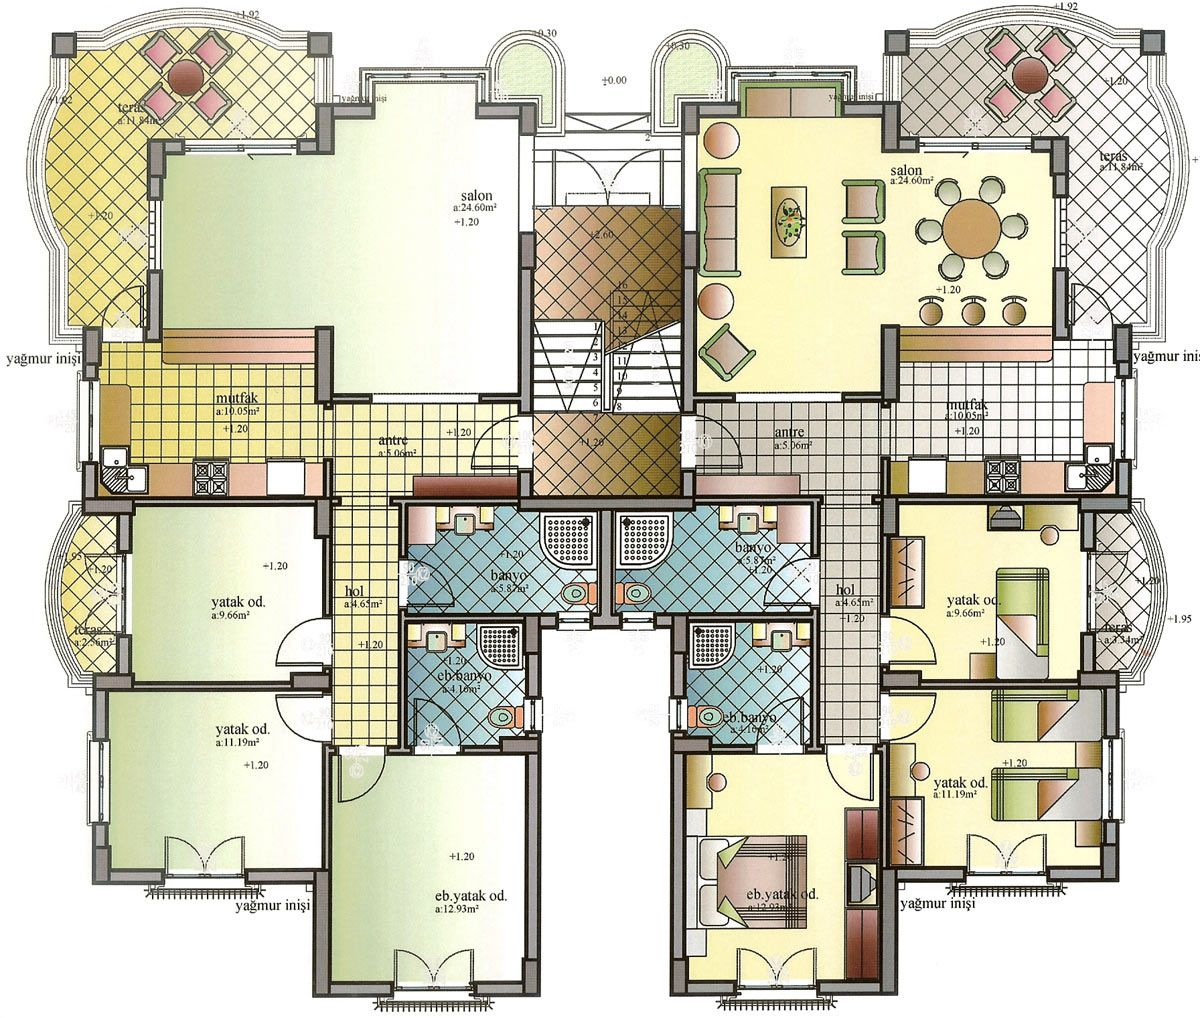 modern apartment design plans. modern apartment building plans  Mimari Pinterest Building